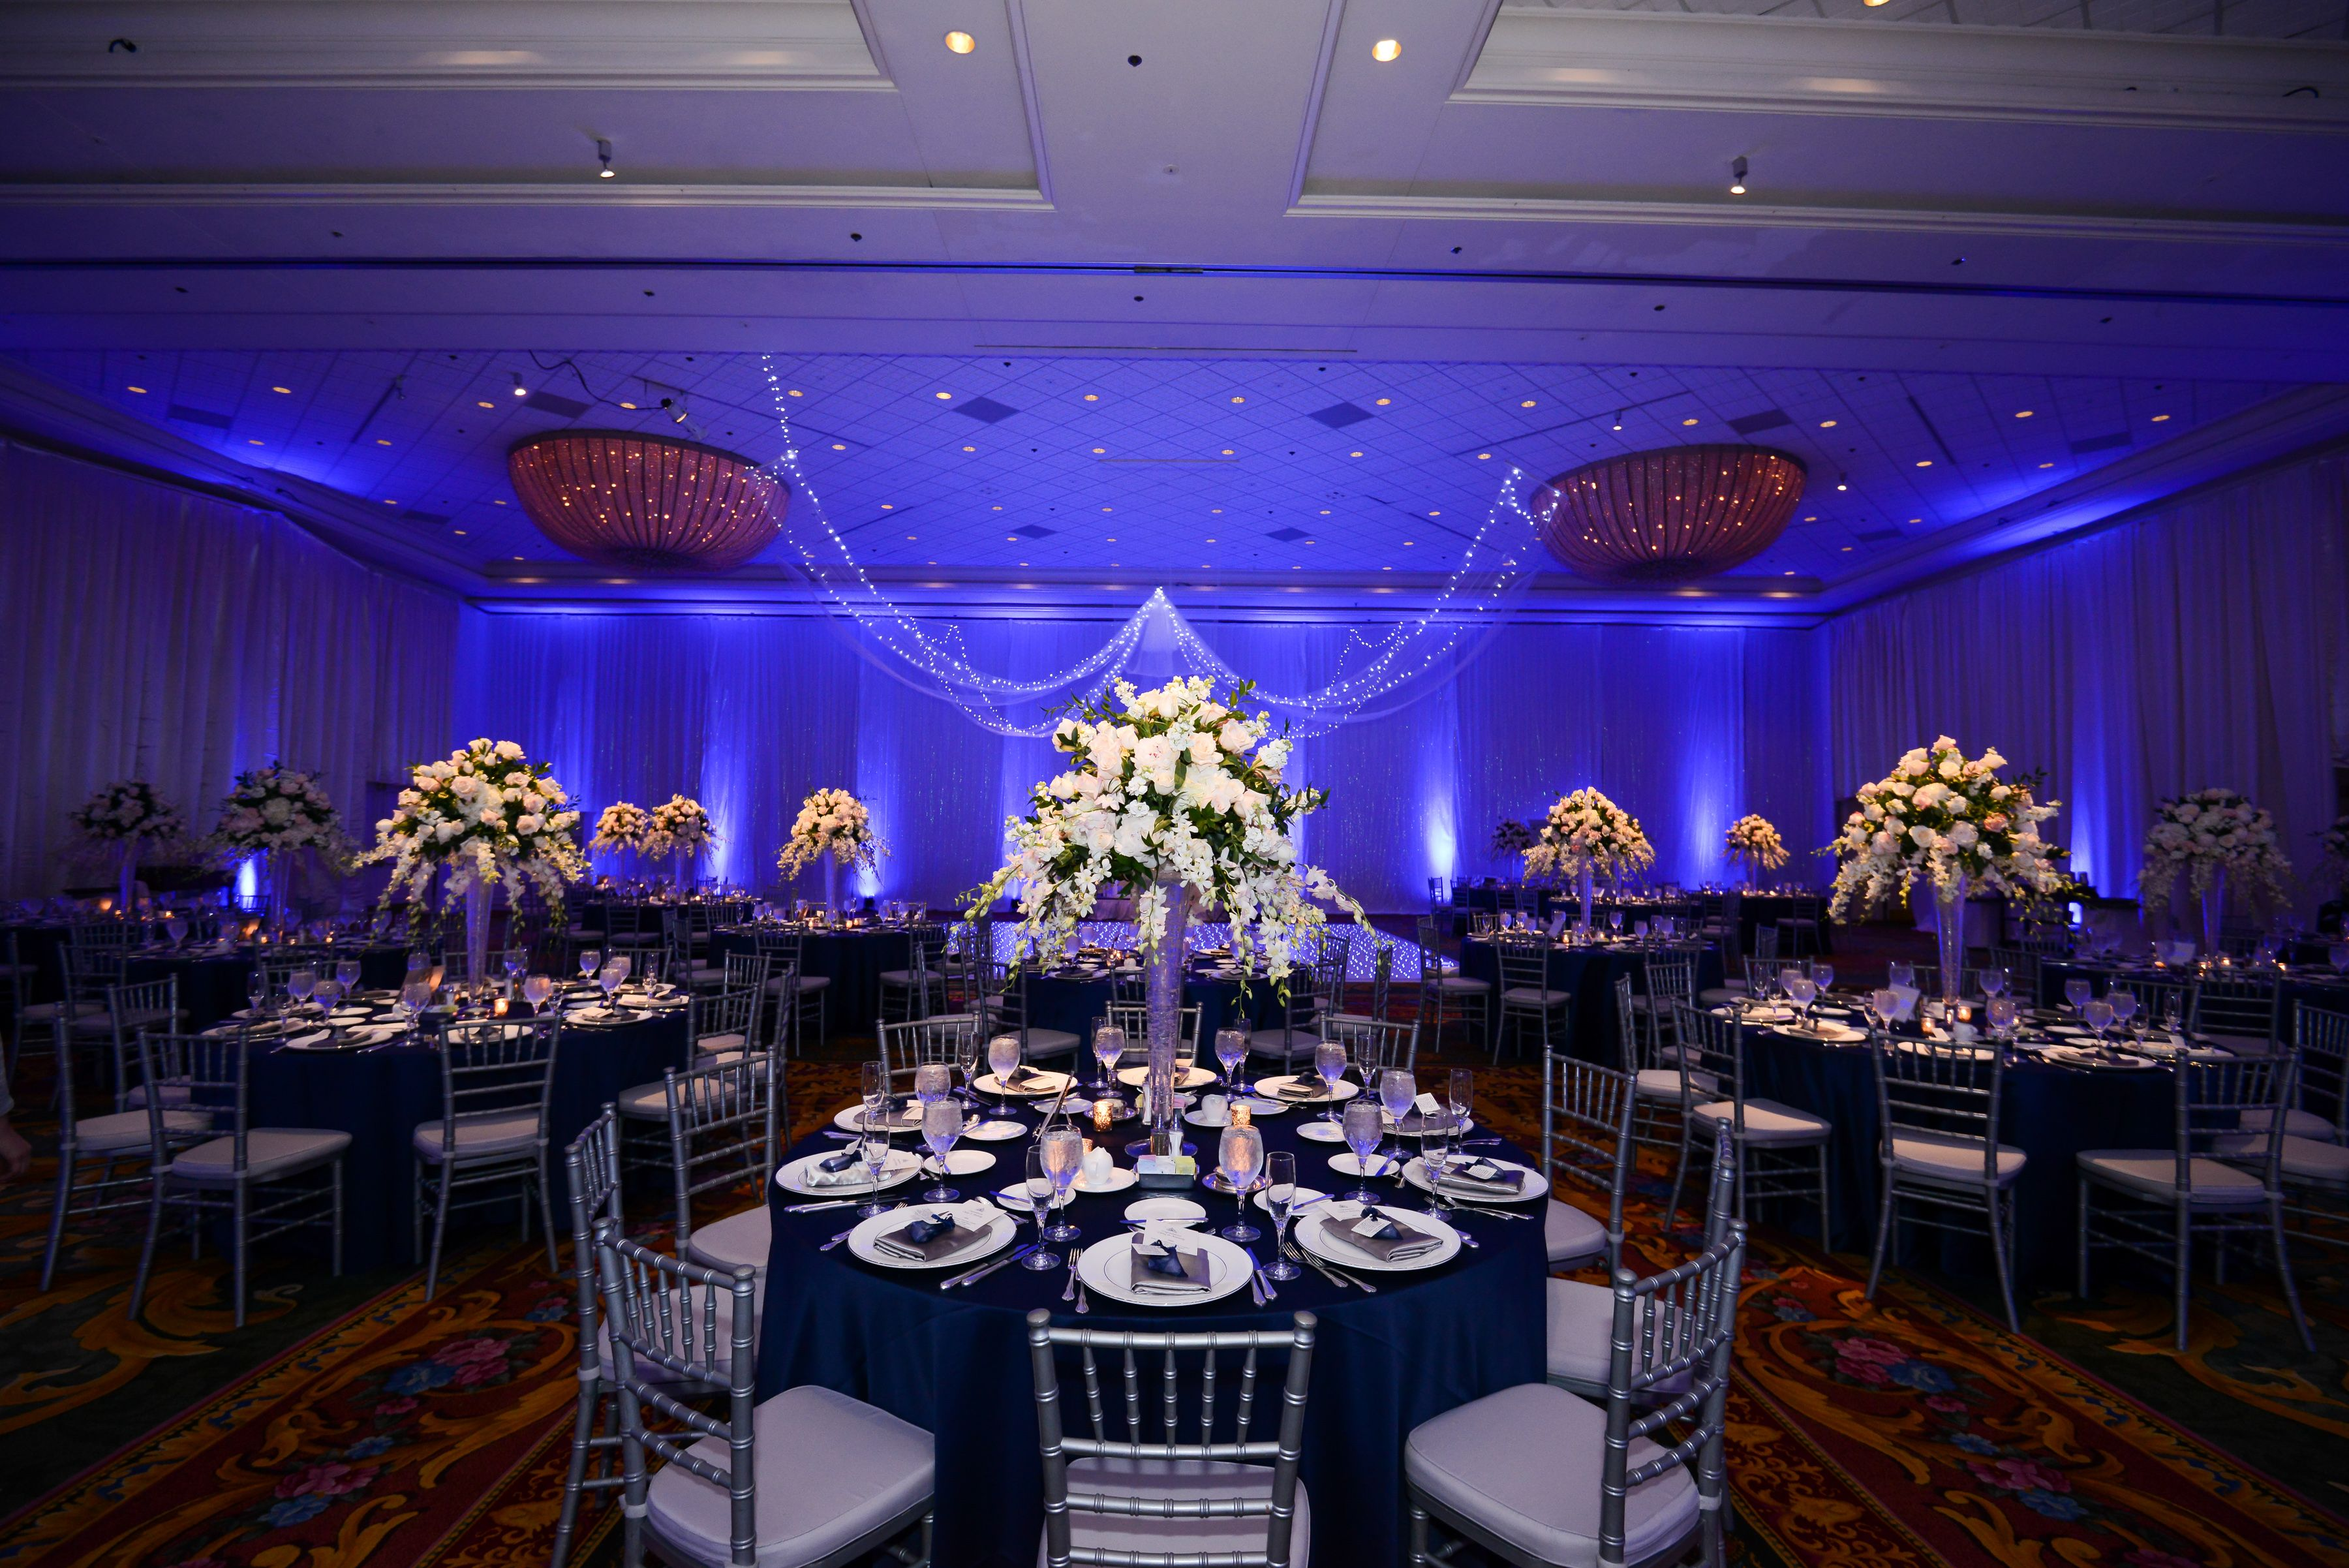 Wedding Venues This Reception At Disney S Grand Floridian Resort Will Have You Feeling Like Stepped Into A